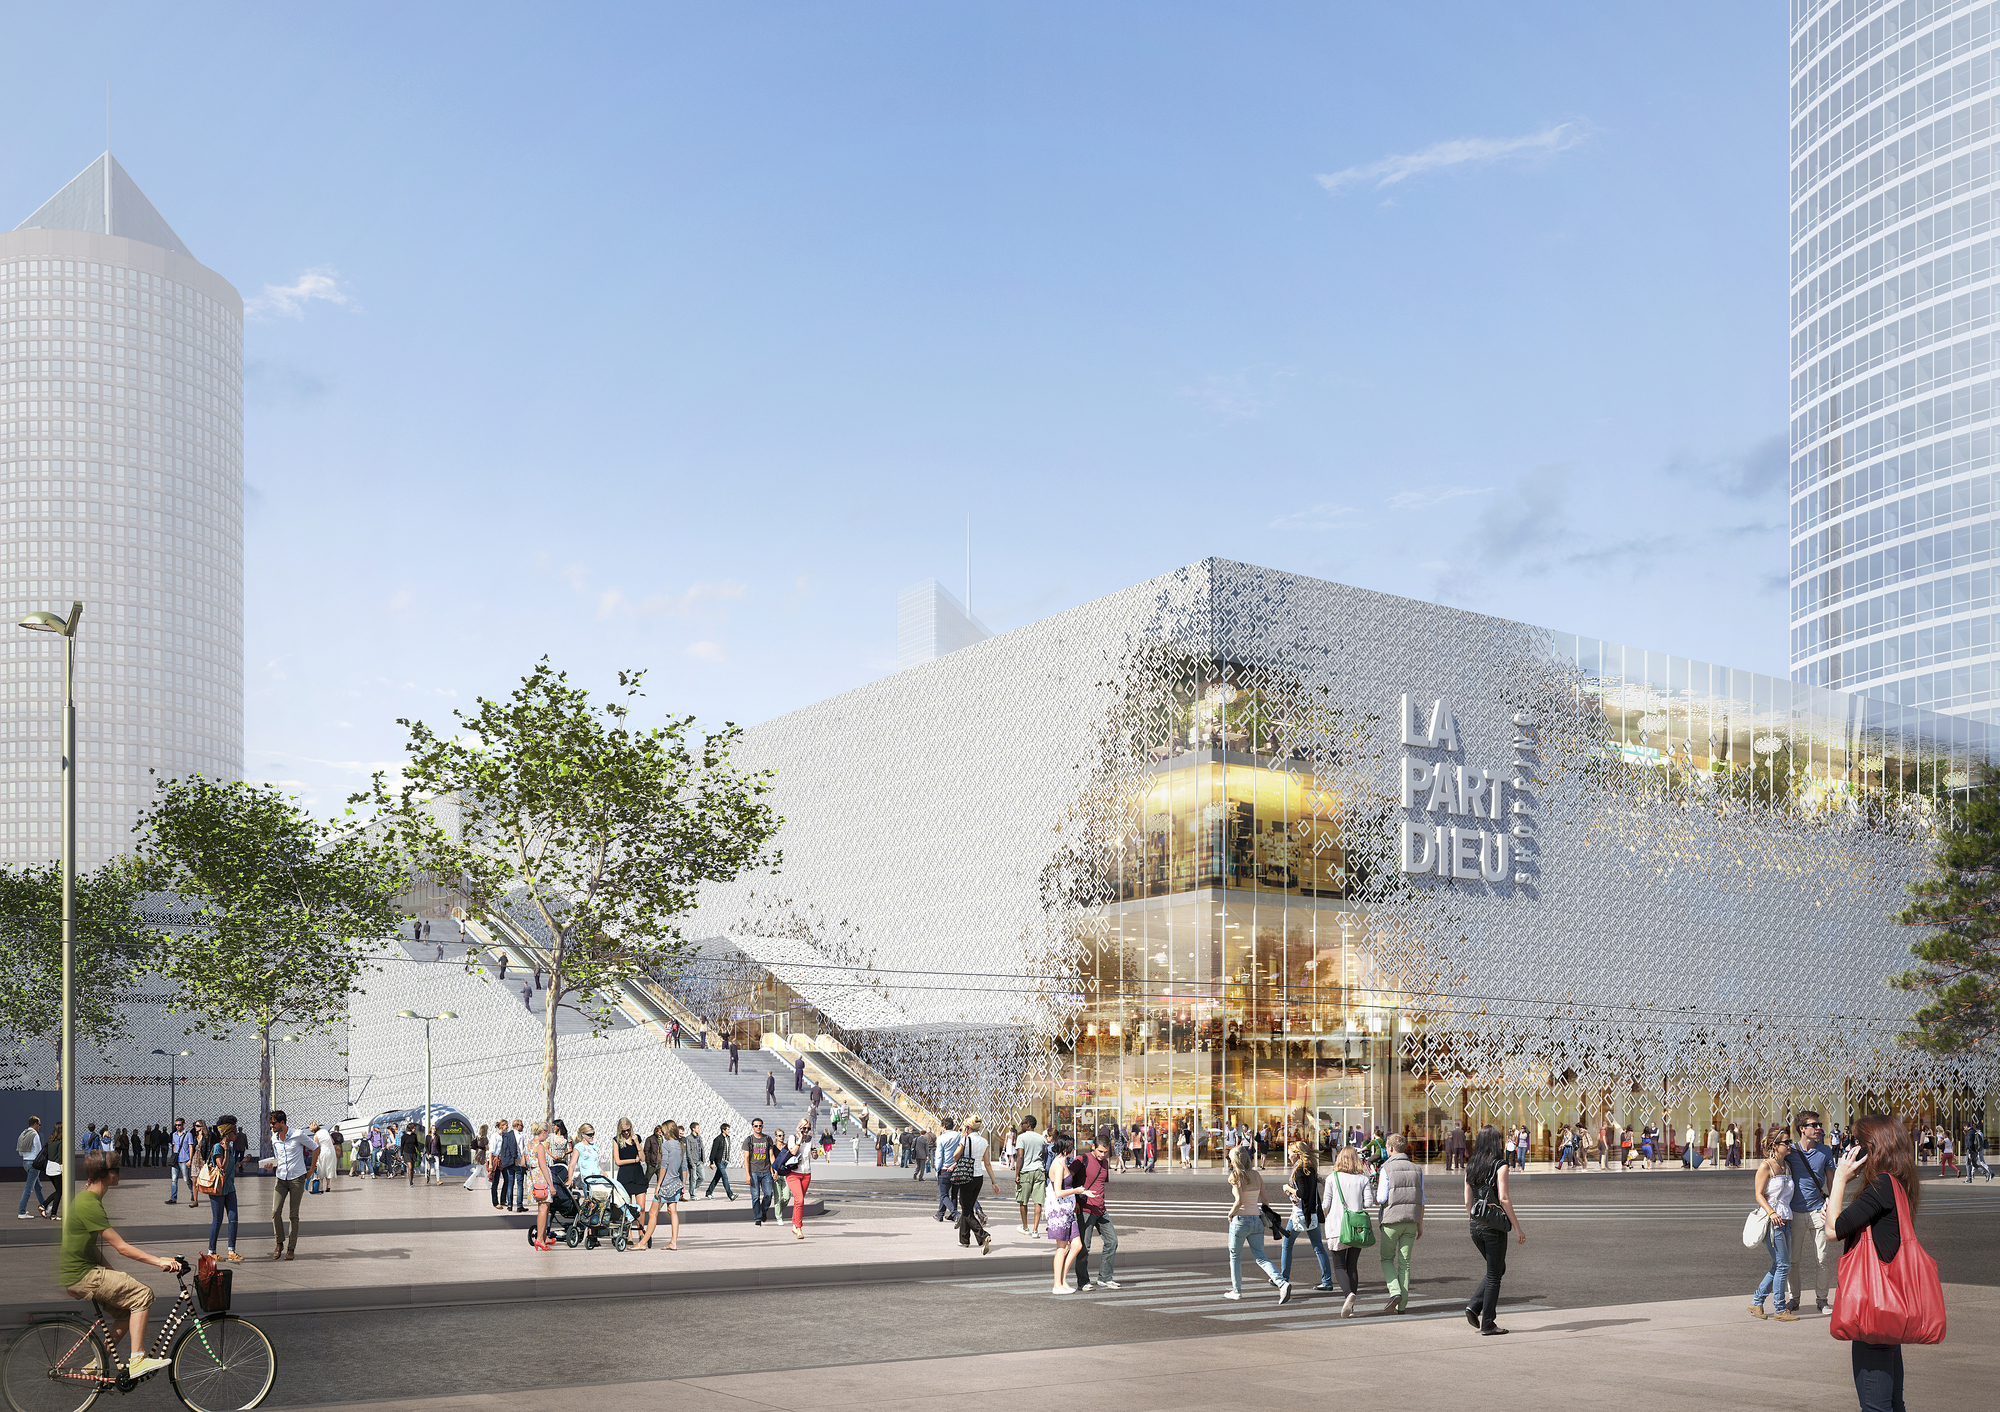 mvrdv reveals plans to transform part dieu shopping center in lyon archdaily. Black Bedroom Furniture Sets. Home Design Ideas